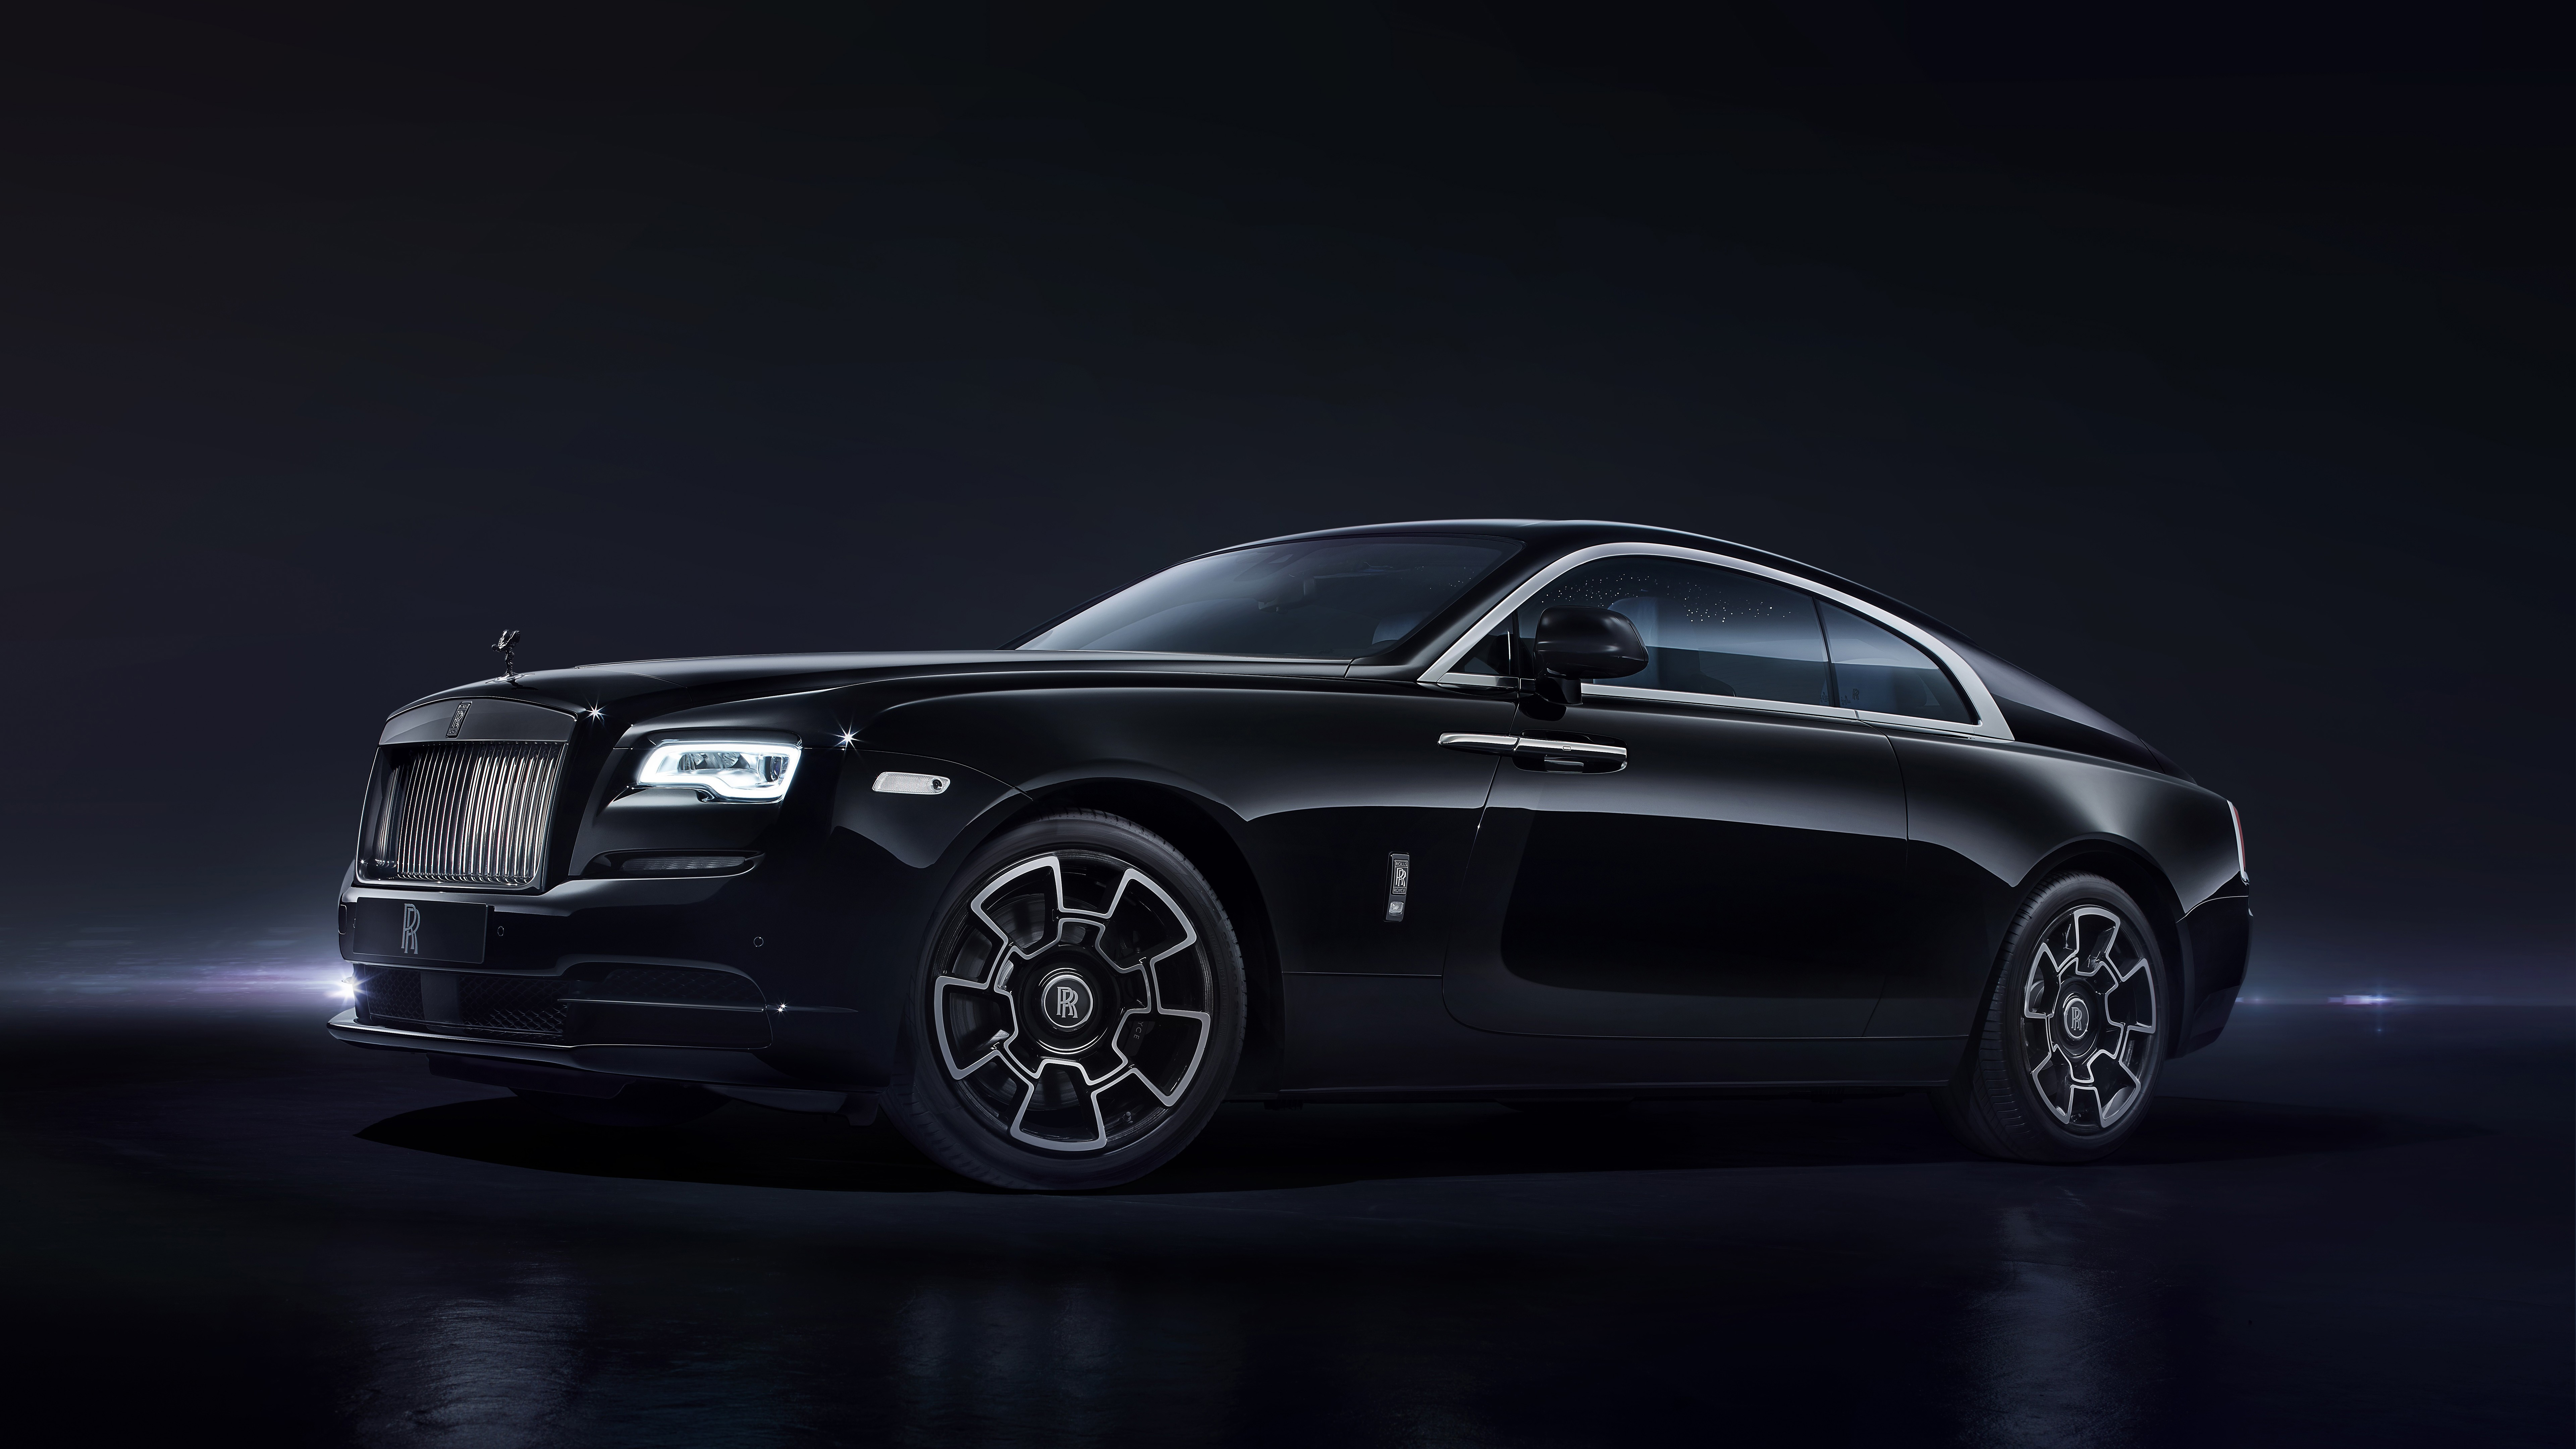 Cute Wallpaper In Ipad Rolls Royce Wraith Black Badge Geneva 2016 Wallpapers Hd